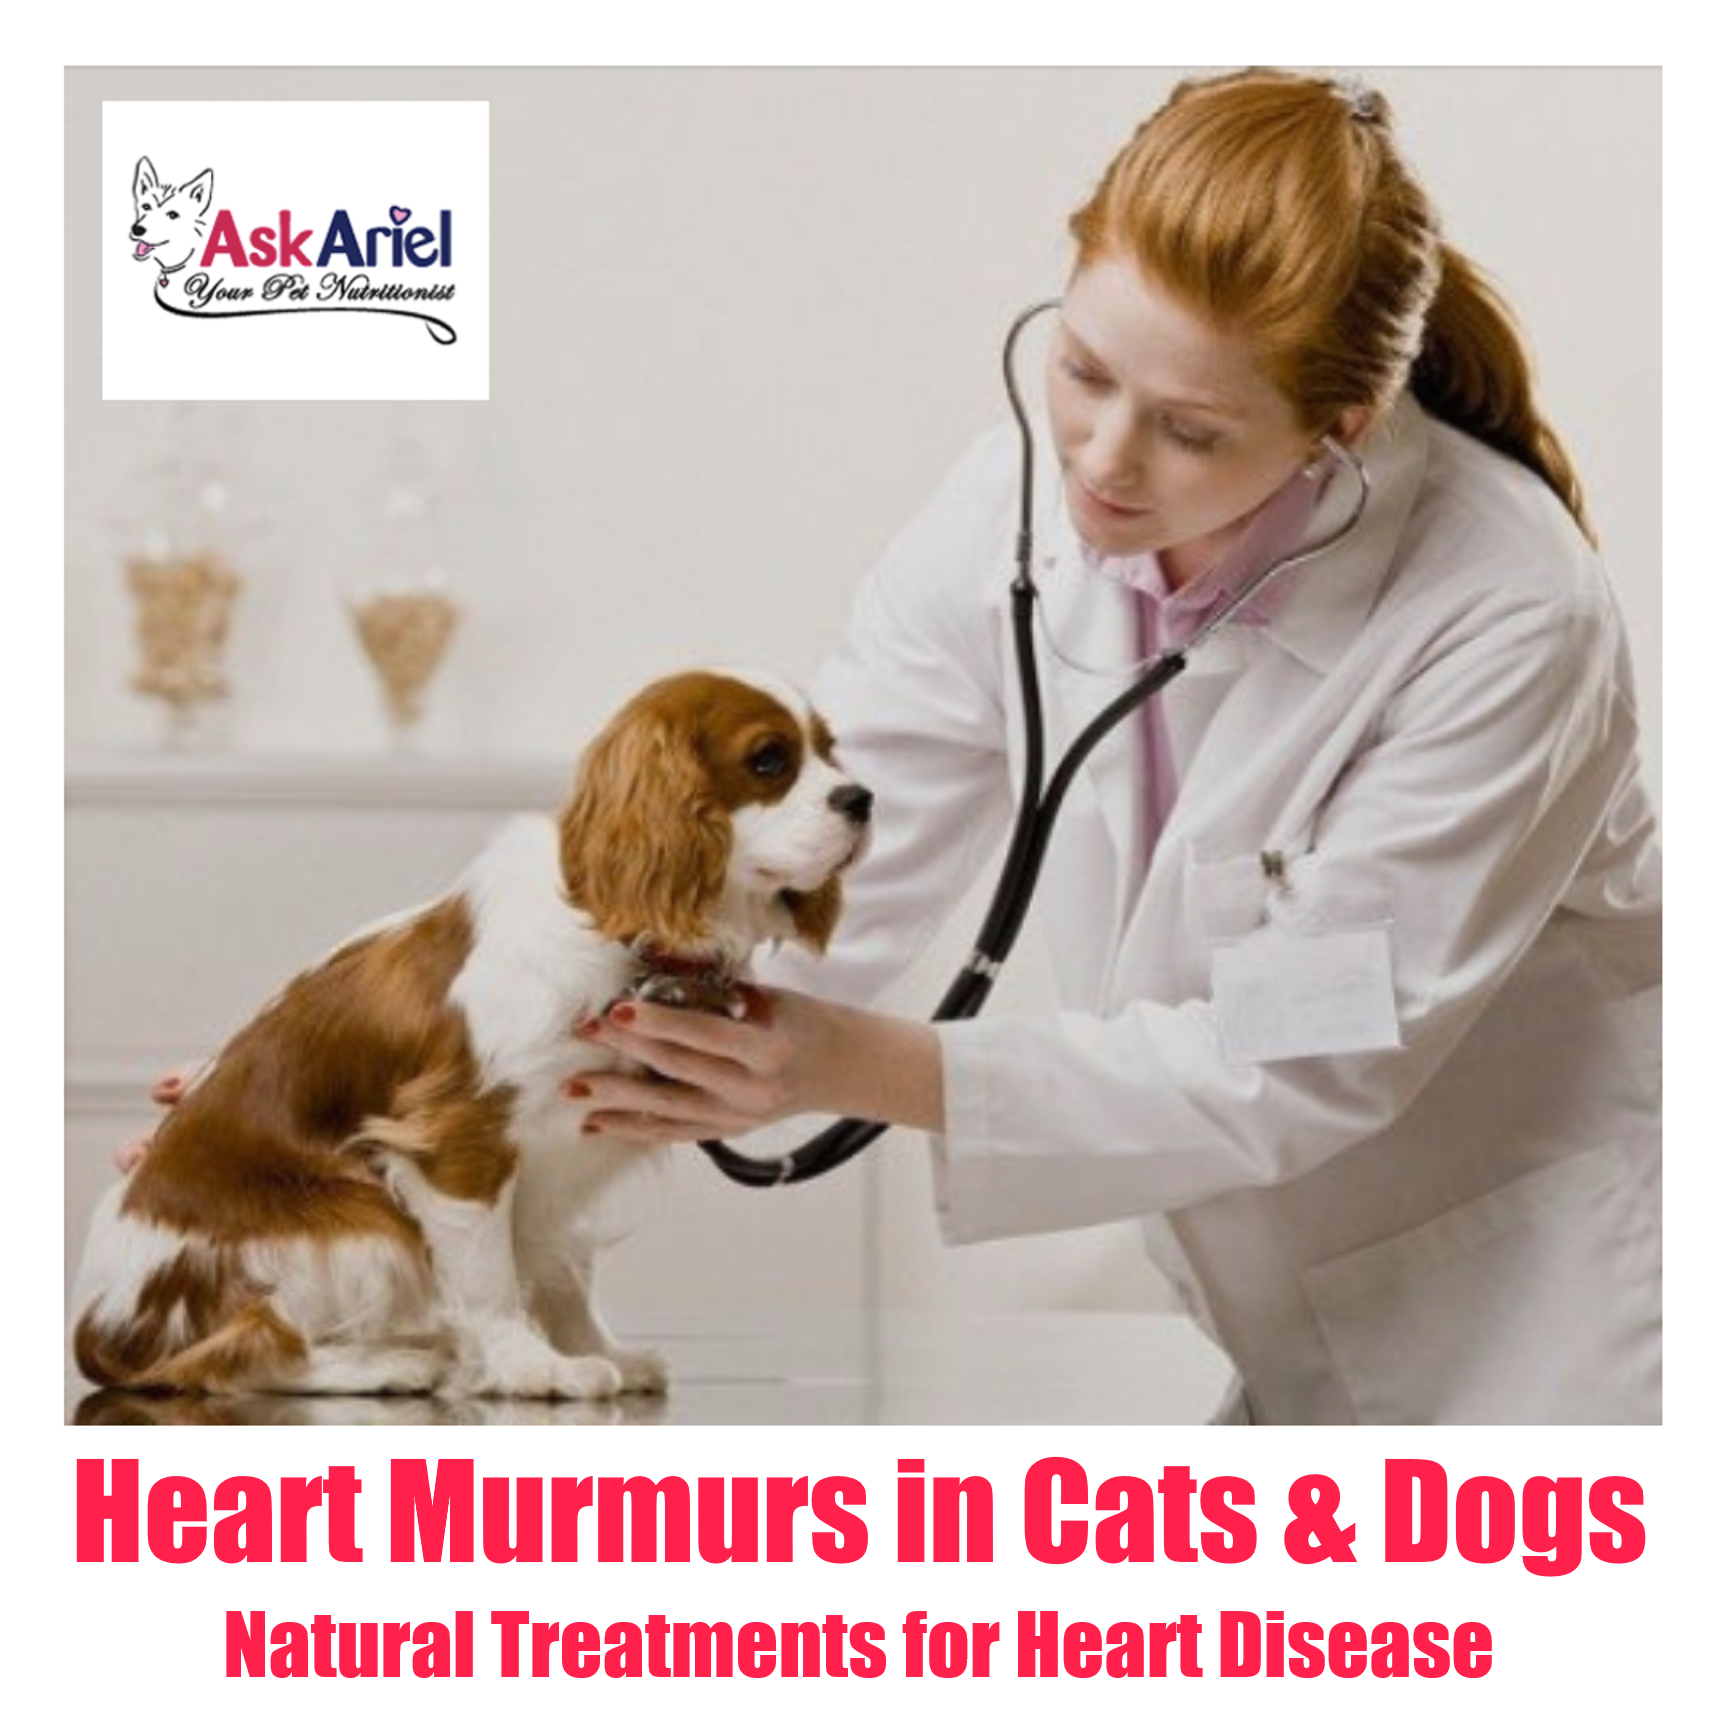 What is a heart murmur? It is an abnormal sound coming